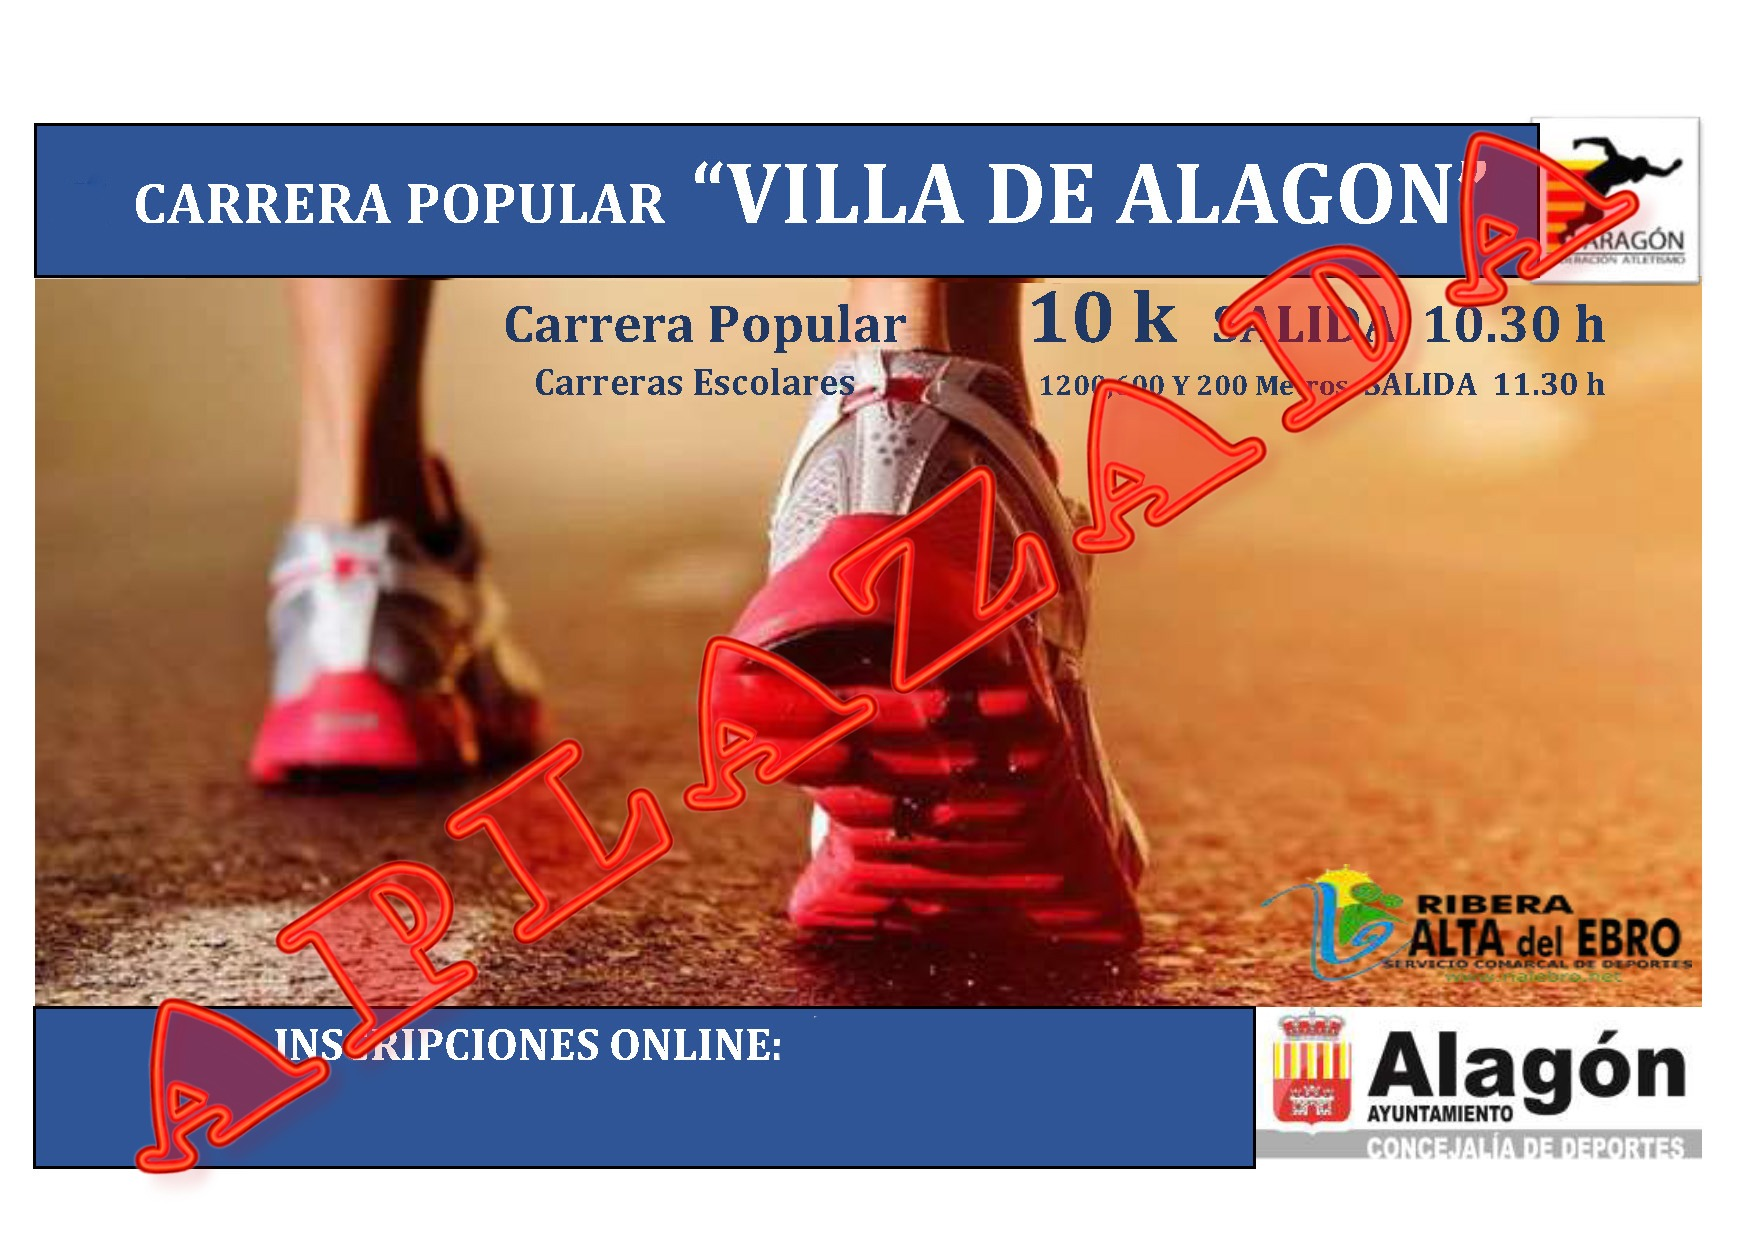 CARTEL 2020 carrera alagon